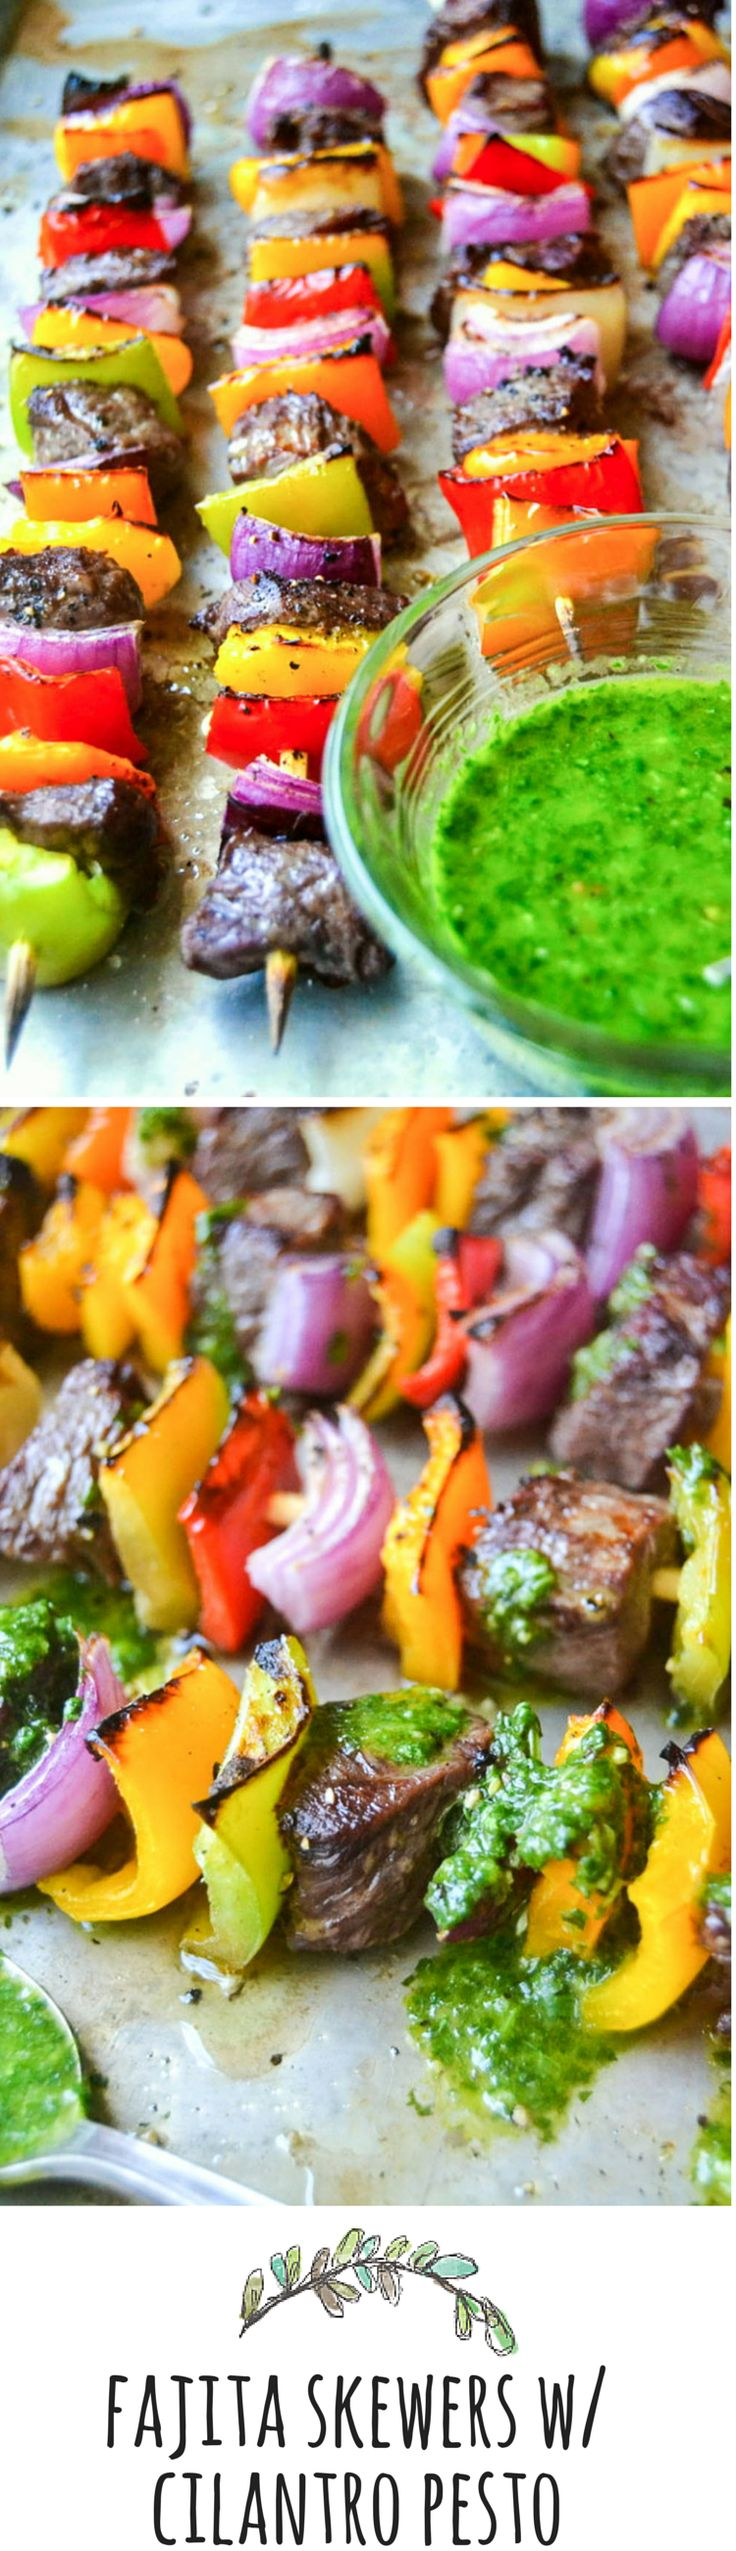 Top Sirloin Steak Fajita Skewers with Cilantro Pesto _ Grilling brings out the natural flavor, & the sauce packs a powerful punch of citrus & cilantro. These are a fun, festive, & healthy way to eat!